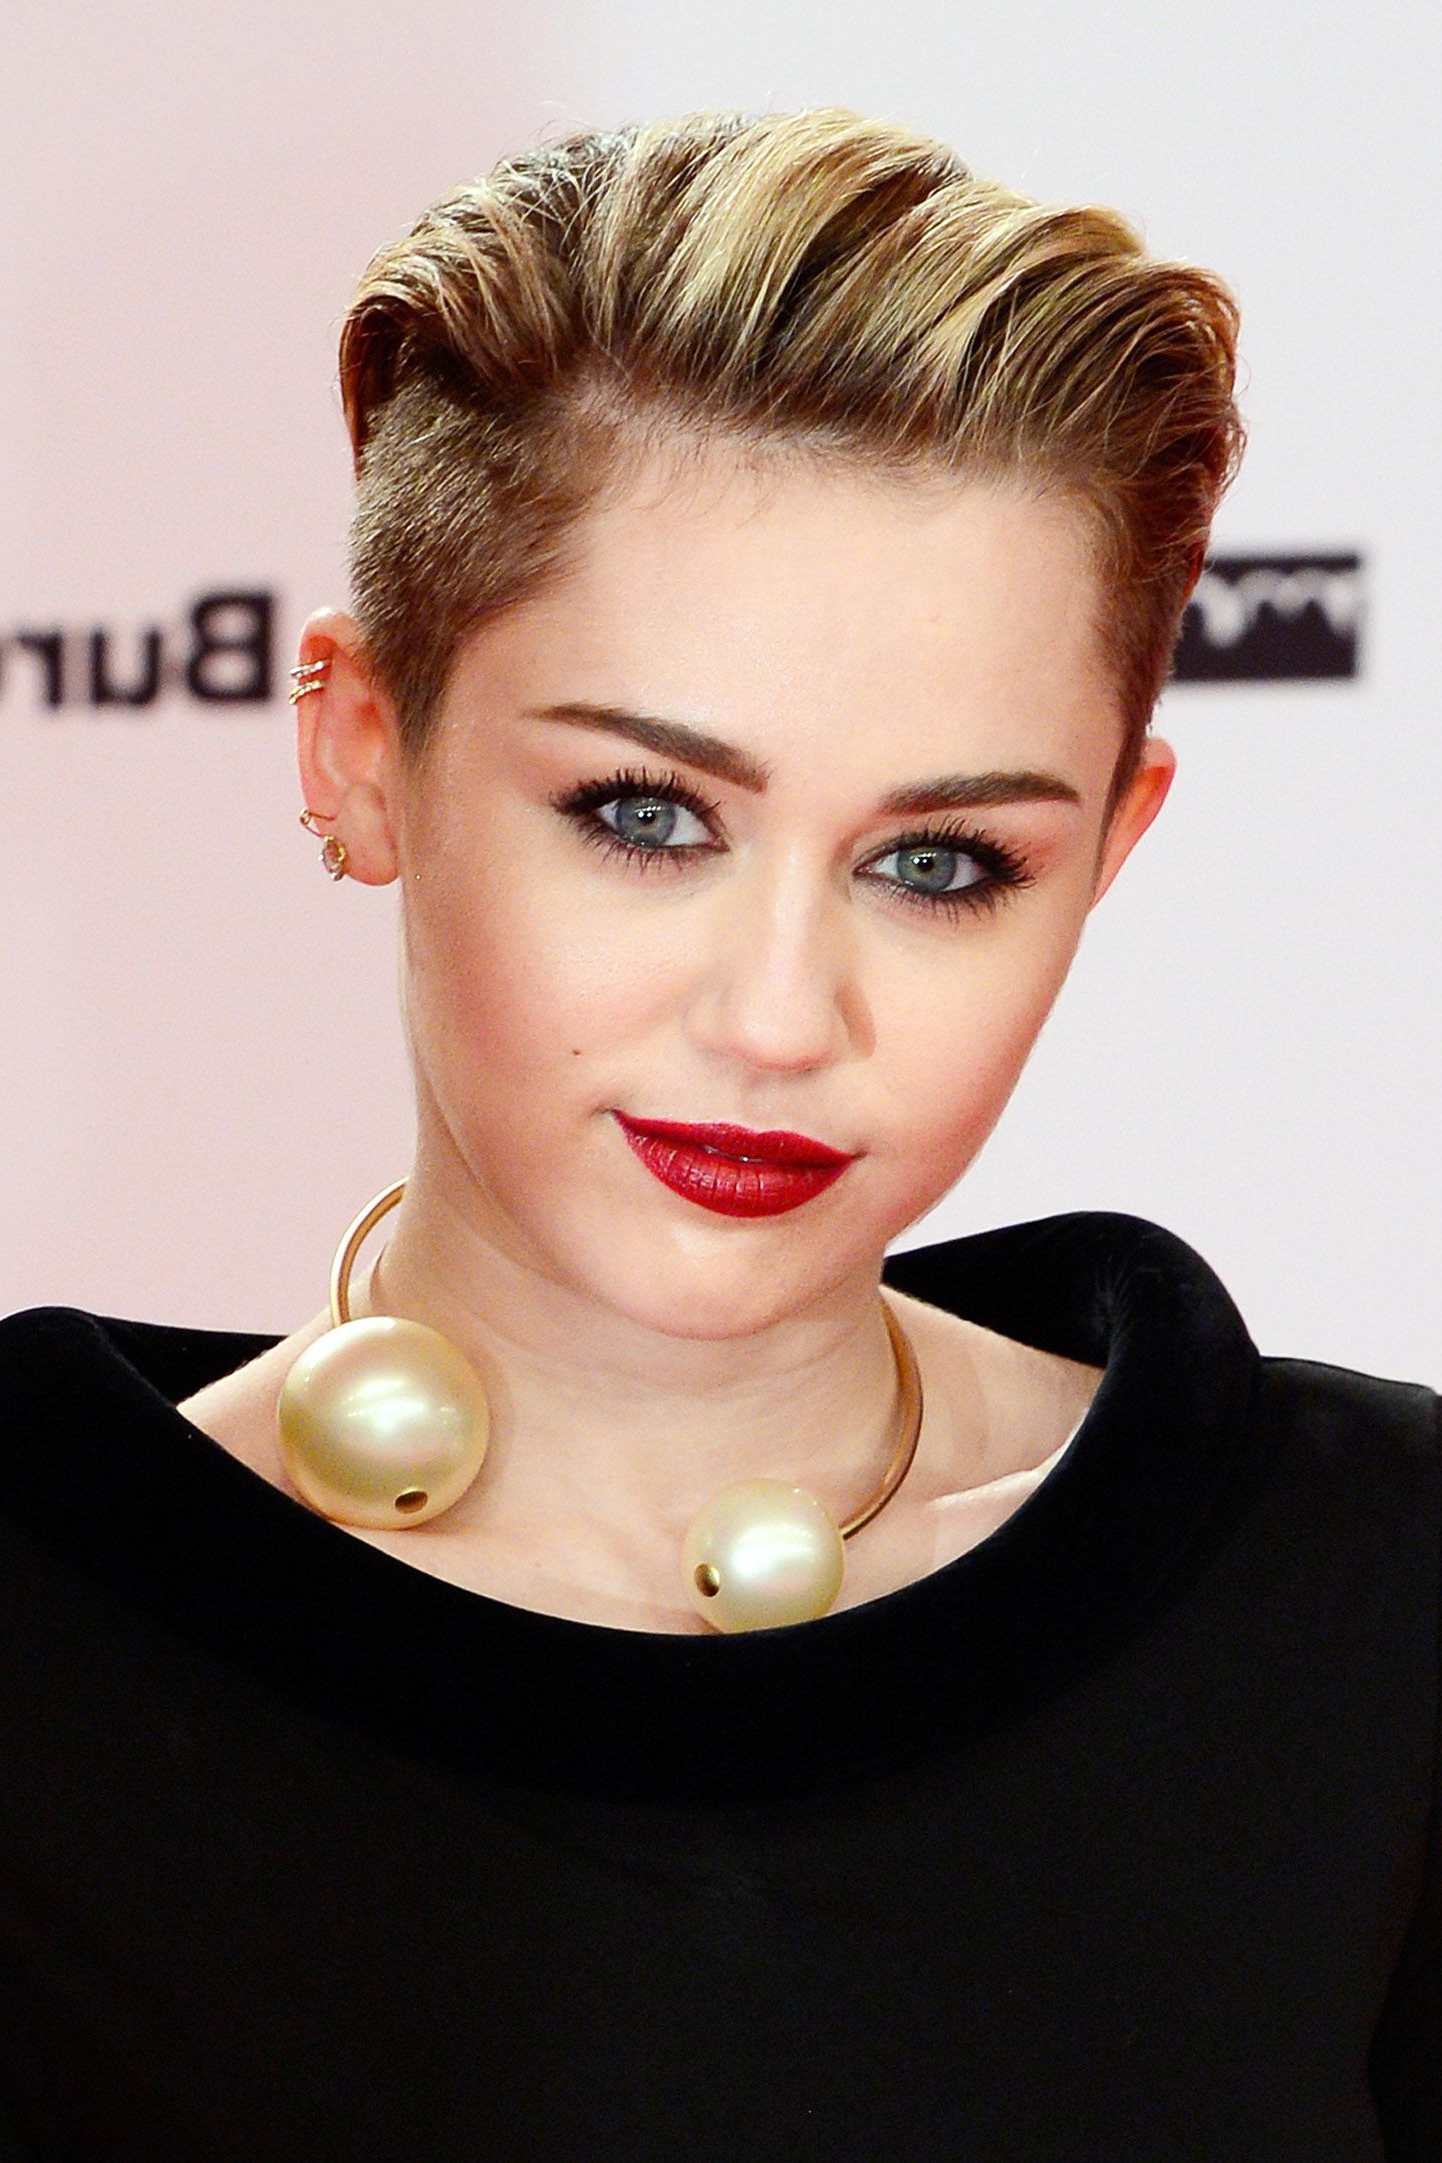 Miley Cyrus' Best Hairstyles Of All Time – 66 Miley Cyrus Hair Cuts Inside Miley Cyrus Short Hairstyles (View 15 of 25)